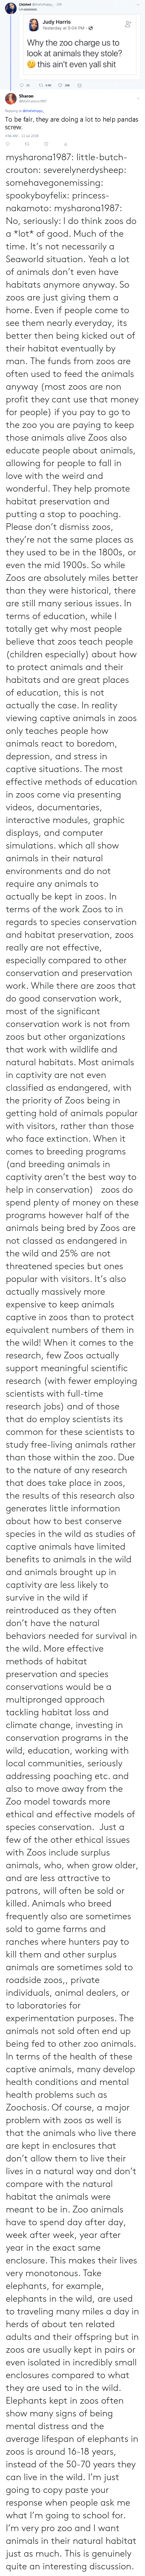 classified: (Ja)ded @thefathippy 20h  maooo000  Judy Harris  Yesterday at 5:04 PM.  0+  Why the zoo charge us to  look at animals they stole?  this ain't even yall shit  Sharon  @MySharona1987  Replying to @thefathippy  To be fair, they are doing a lot to help pandas  screw.  4:56 AM- 11 Jul 2018 mysharona1987:  little-butch-crouton: severelynerdysheep:  somehavegonemissing:  spookyboyfelix:  princess-nakamoto:   mysharona1987:   No, seriously: I do think zoos do a *lot* of good. Much of the time. It's not necessarily a Seaworld situation.   Yeah a lot of animals don't even have habitats anymore anyway. So zoos are just giving them a home. Even if people come to see them nearly everyday, its better then being kicked out of their habitat eventually by man.   The funds from zoos are often used to feed the animals anyway (most zoos are non profit they cant use that money for people) if you pay to go to the zoo you are paying to keep those animals alive  Zoos also educate people about animals, allowing for people to fall in love with the weird and wonderful.  They help promote habitat preservation and putting a stop to poaching. Please don't dismiss zoos, they're not the same places as they used to be in the 1800s, or even the mid 1900s.   So while Zoos are absolutely miles better than they were historical, there are still many serious issues. In terms of education, while I totally get why most people believe that zoos teach people (children especially) about how to protect animals and their habitats and are great places of education, this is not actually the case. In reality viewing captive animals in zoos only teaches people how animals react to boredom, depression, and stress in captive situations. The most effective methods of education in zoos come via presenting videos, documentaries, interactive modules, graphic displays, and computer simulations. which all show animals in their natural environments and do not require any animals to actually be kept in zoos. In terms of the work Zoos to in regards to species conservation and habitat preservation, zoos really are not effective, especially compared to other conservation and preservation work. While there are zoos that do good conservation work, most of the significant conservation work is not from zoos but other organizations that work with wildlife and natural habitats. Most animals in captivity are not even classified as endangered, with the priority of Zoos being in getting hold of animals popular with visitors, rather than those who face extinction. When it comes to breeding programs (and breeding animals in captivity aren't the best way to help in conservation)   zoos do spend plenty of money on these programs however half of the animals being bred by Zoos are not classed as endangered in the wild and 25% are not threatened species but ones popular with visitors. It's also actually massively more expensive to keep animals captive in zoos than to protect equivalent numbers of them in the wild! When it comes to the research, few Zoos actually support meaningful scientific research (with fewer employing scientists with full-time research jobs) and of those that do employ scientists its common for these scientists to study free-living animals rather than those within the zoo. Due to the nature of any research that does take place in zoos, the results of this research also generates little information about how to best conserve species in the wild as studies of captive animals have limited benefits to animals in the wild and animals brought up in captivity are less likely to survive in the wild if reintroduced as they often don't have the natural behaviors needed for survival in the wild. More effective methods of habitat preservation and species conservations would be a multipronged approach tackling habitat loss and climate change, investing in conservation programs in the wild, education, working with local communities, seriously addressing poaching etc. and also to move away from the Zoo model towards more ethical and effective models of species conservation.  Just a few of the other ethical issues with Zoos include surplus animals, who, when grow older, and are less attractive to patrons, will often be sold or killed. Animals who breed frequently also are sometimes sold to game farms and ranches where hunters pay to kill them and other surplus animals are sometimes sold to roadside zoos,, private individuals, animal dealers, or to laboratories for experimentation purposes. The animals not sold often end up being fed to other zoo animals. In terms of the health of these captive animals, many develop health conditions and mental health problems such as Zoochosis. Of course, a major problem with zoos as well is that the animals who live there are kept in enclosures that don't allow them to live their lives in a natural way and don't compare with the natural habitat the animals were meant to be in. Zoo animals have to spend day after day, week after week, year after year in the exact same enclosure. This makes their lives very monotonous. Take elephants, for example, elephants in the wild, are used to traveling many miles a day in herds of about ten related adults and their offspring but in zoos are usually kept in pairs or even isolated in incredibly small enclosures compared to what they are used to in the wild. Elephants kept in zoos often show many signs of being mental distress and the average lifespan of elephants in zoos is around 16-18 years, instead of the 50-70 years they can live in the wild.   I'm just going to copy paste your response when people ask me what I'm going to school for. I'm very pro zoo and I want animals in their natural habitat just as much.  This is genuinely quite an interesting discussion.